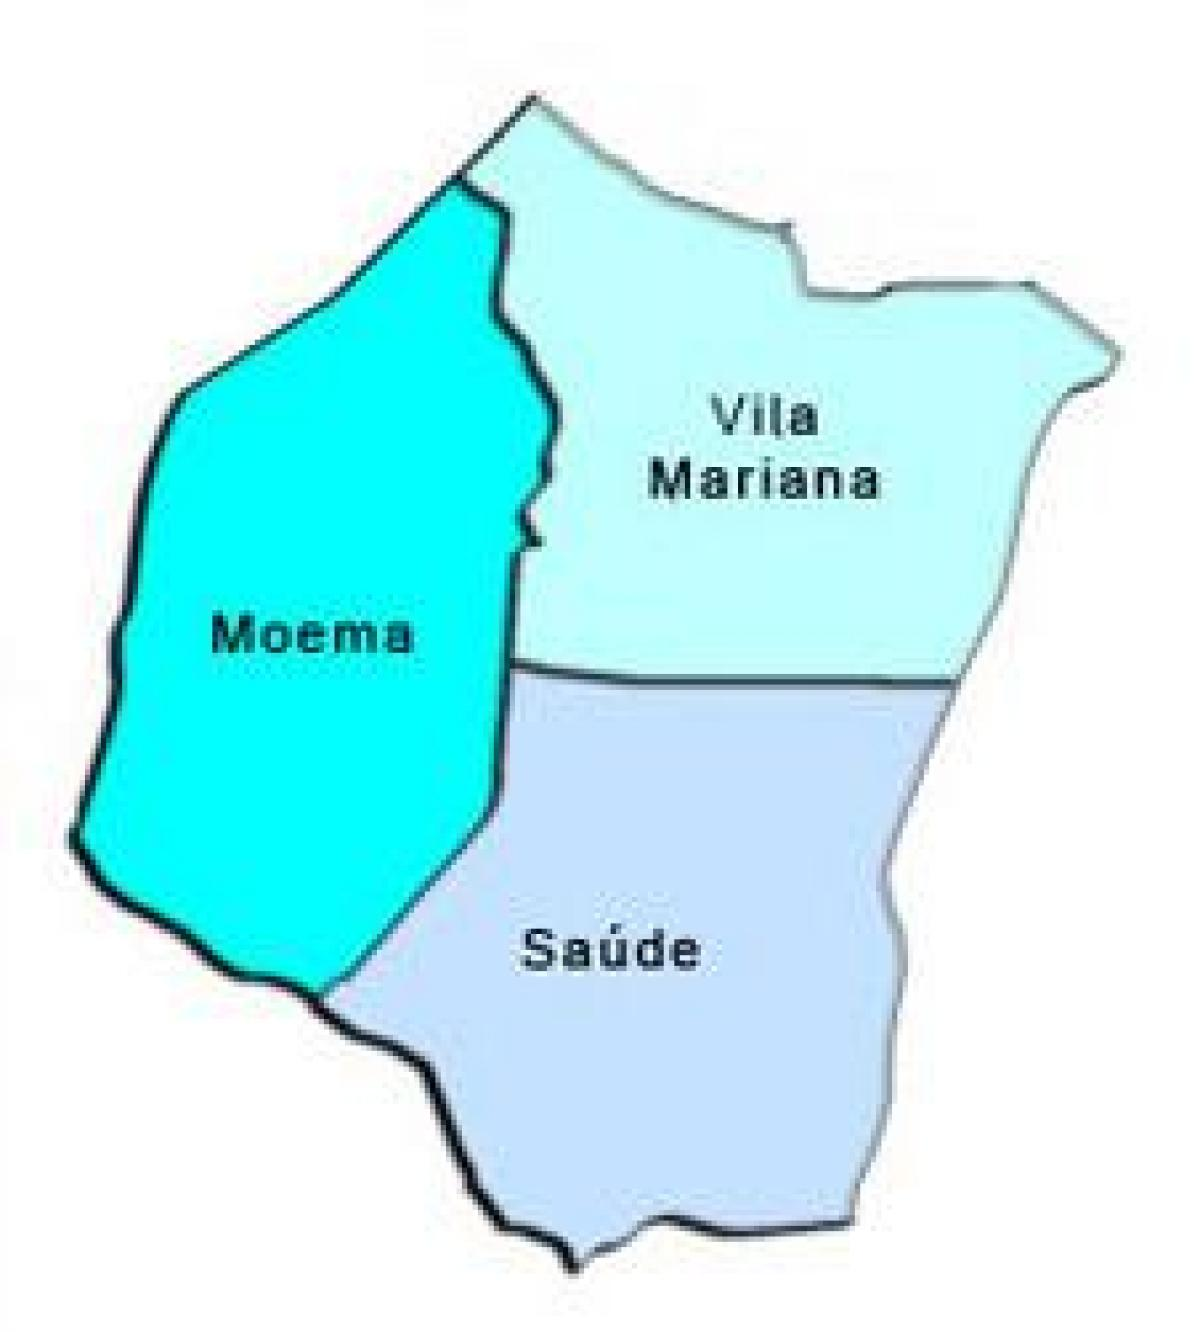 Map of Vila Mariana sub-prefecture